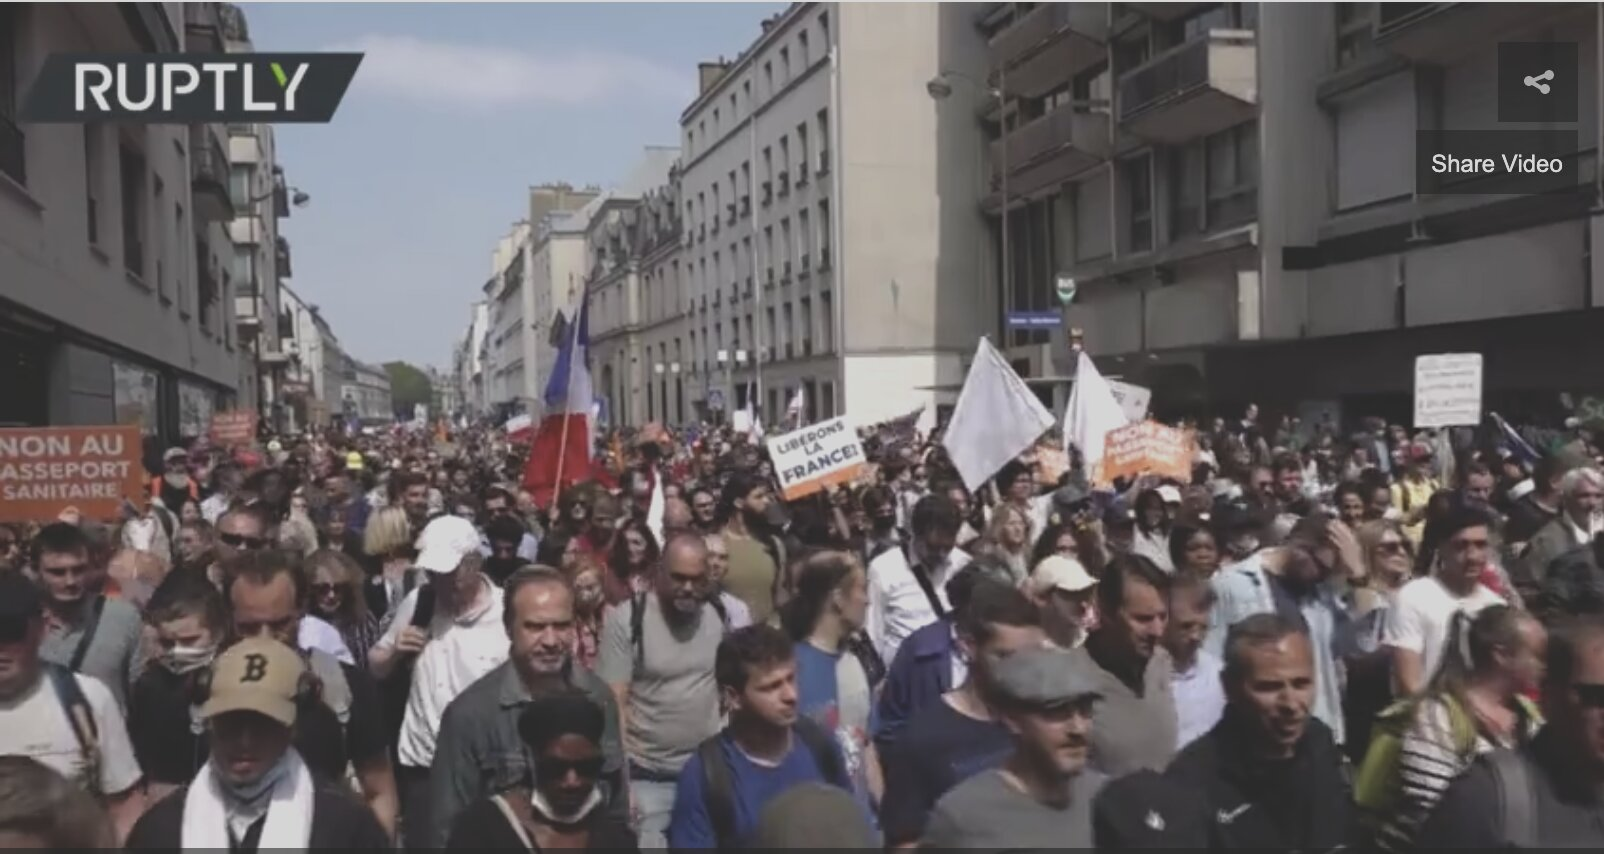 Over ONE HUNDRED THOUSAND rally against 'Covid-19 tyranny' in France, protesting immunity passports & vaccination mandate (VIDEO)